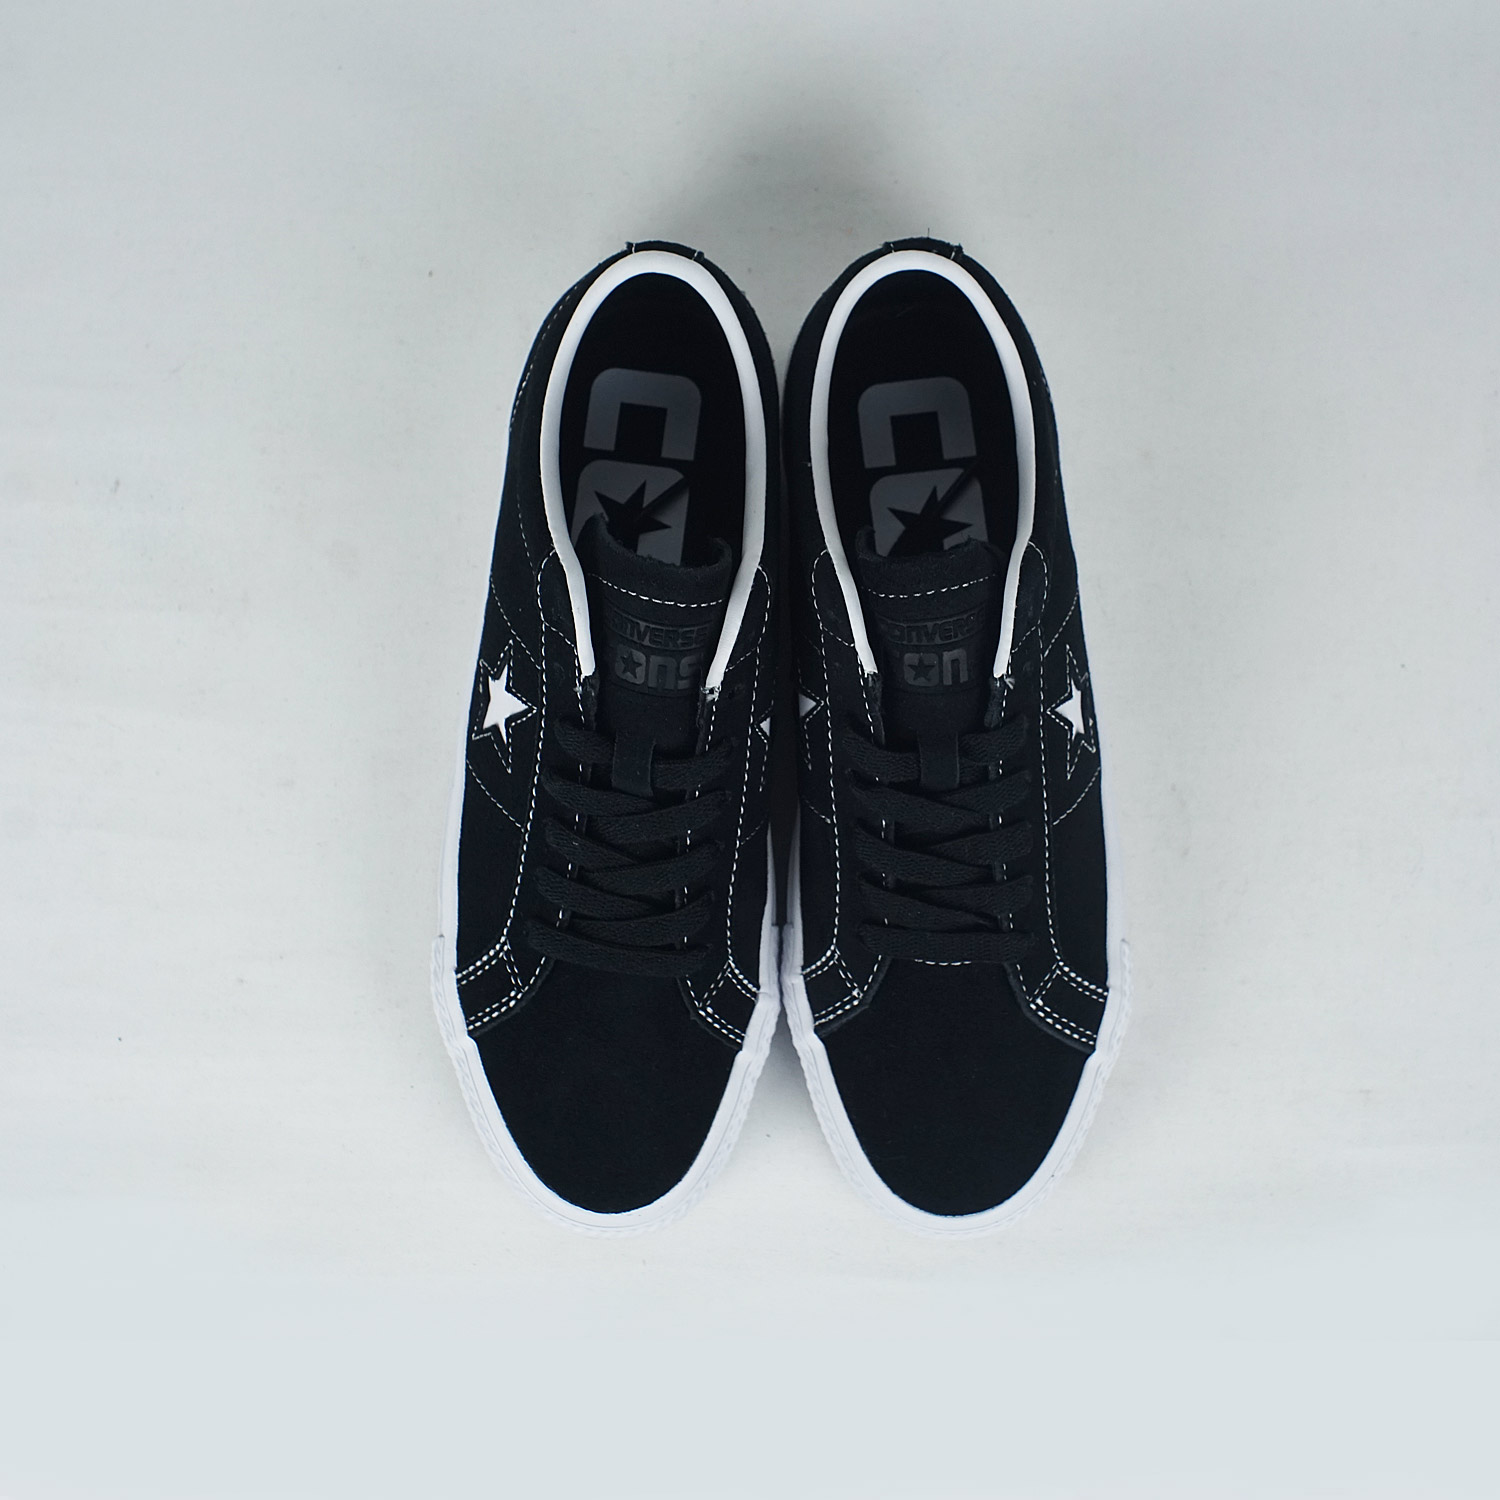 78090eefbed023 Converse-Cons-One-Star-Pro-Ox-Black-White · Converse